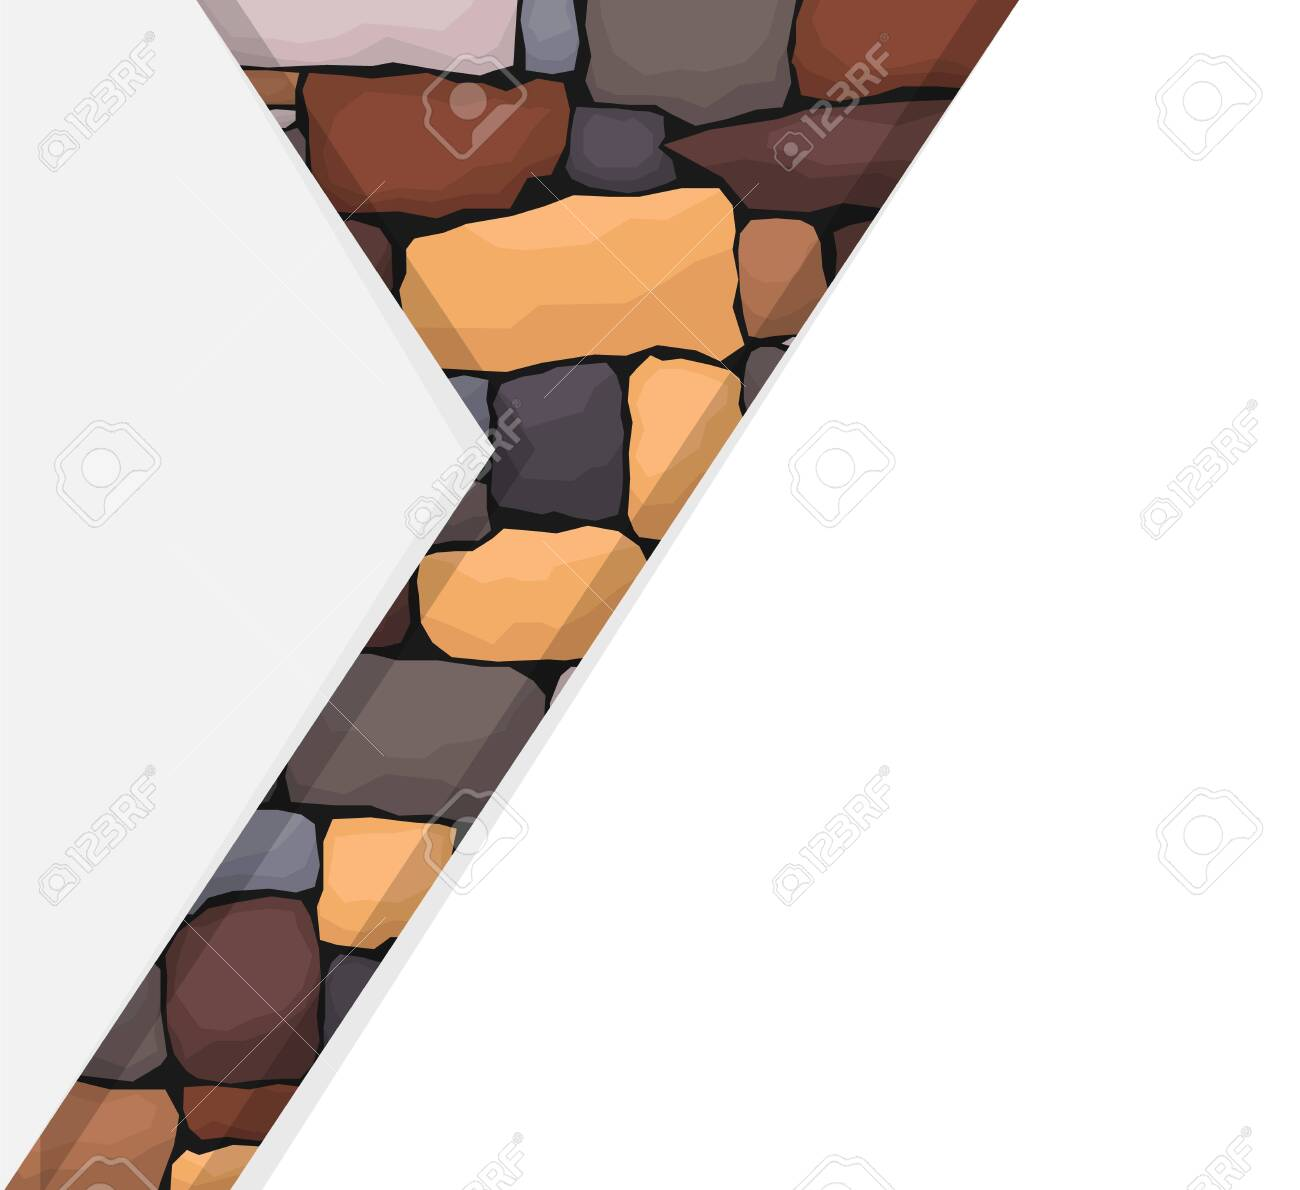 Abstract background with white polygons cutting stone masonry. Vector illustration of abstract image for magazine cover. Vector. - 149140620